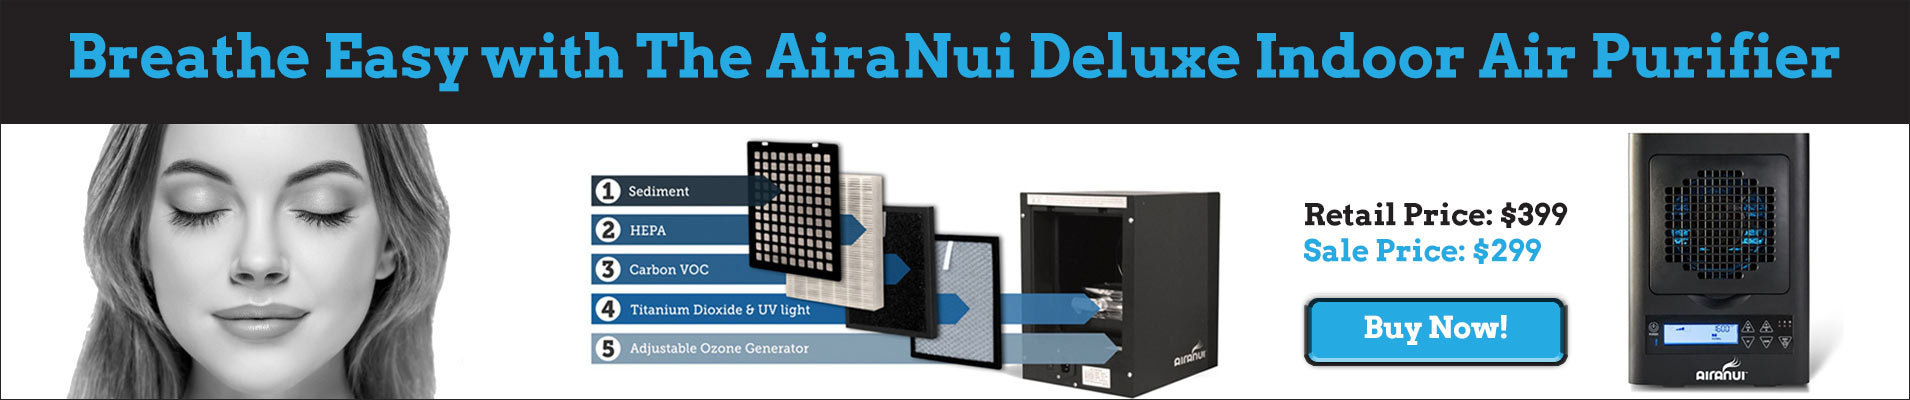 AiraNui Indoor Air Filter Sale